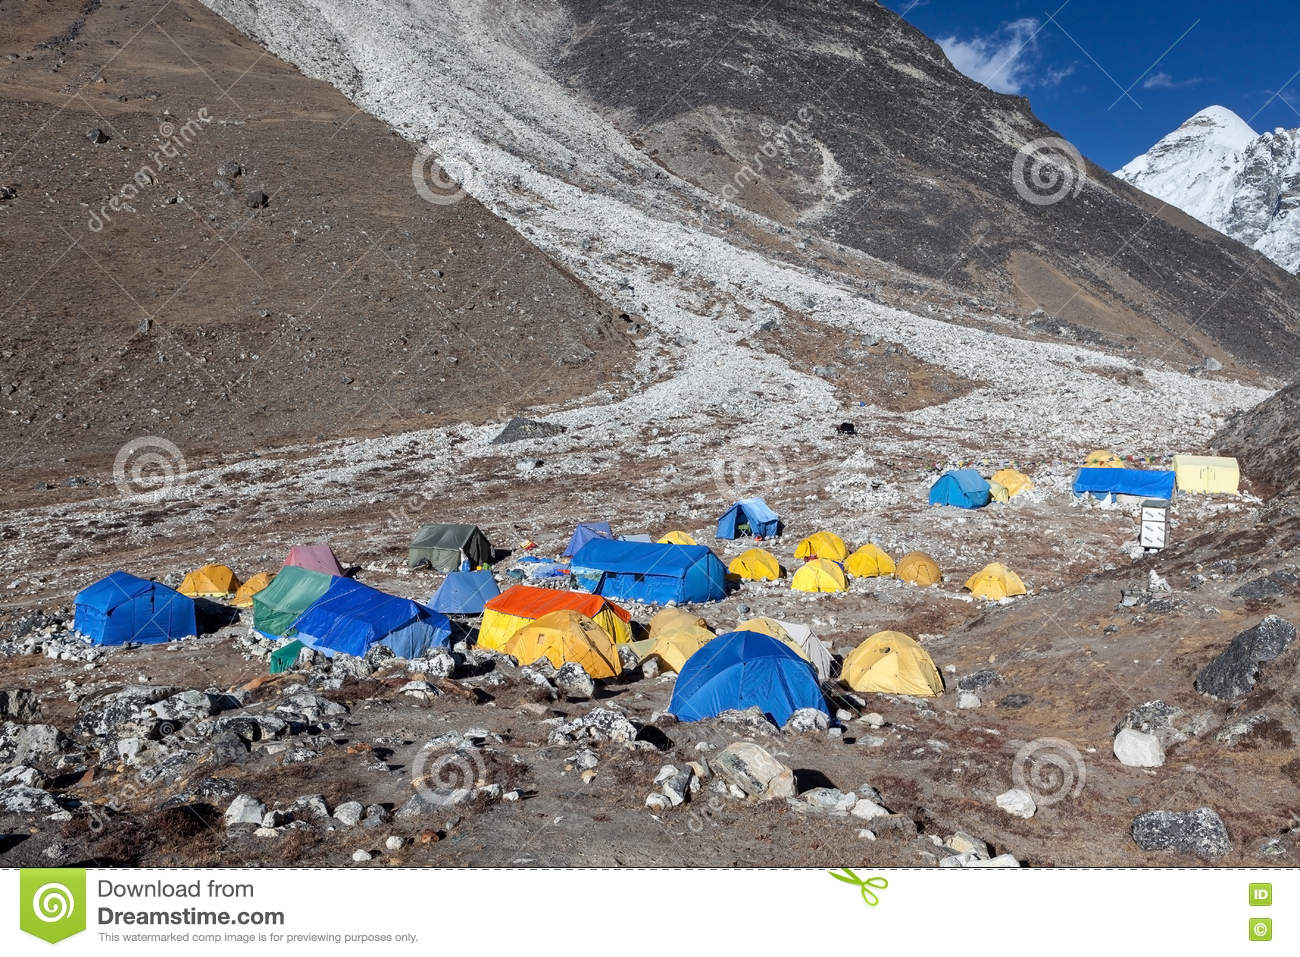 EVEREST BASE CAMP TREK/NEPAL - OCTOBER 25, 2015.